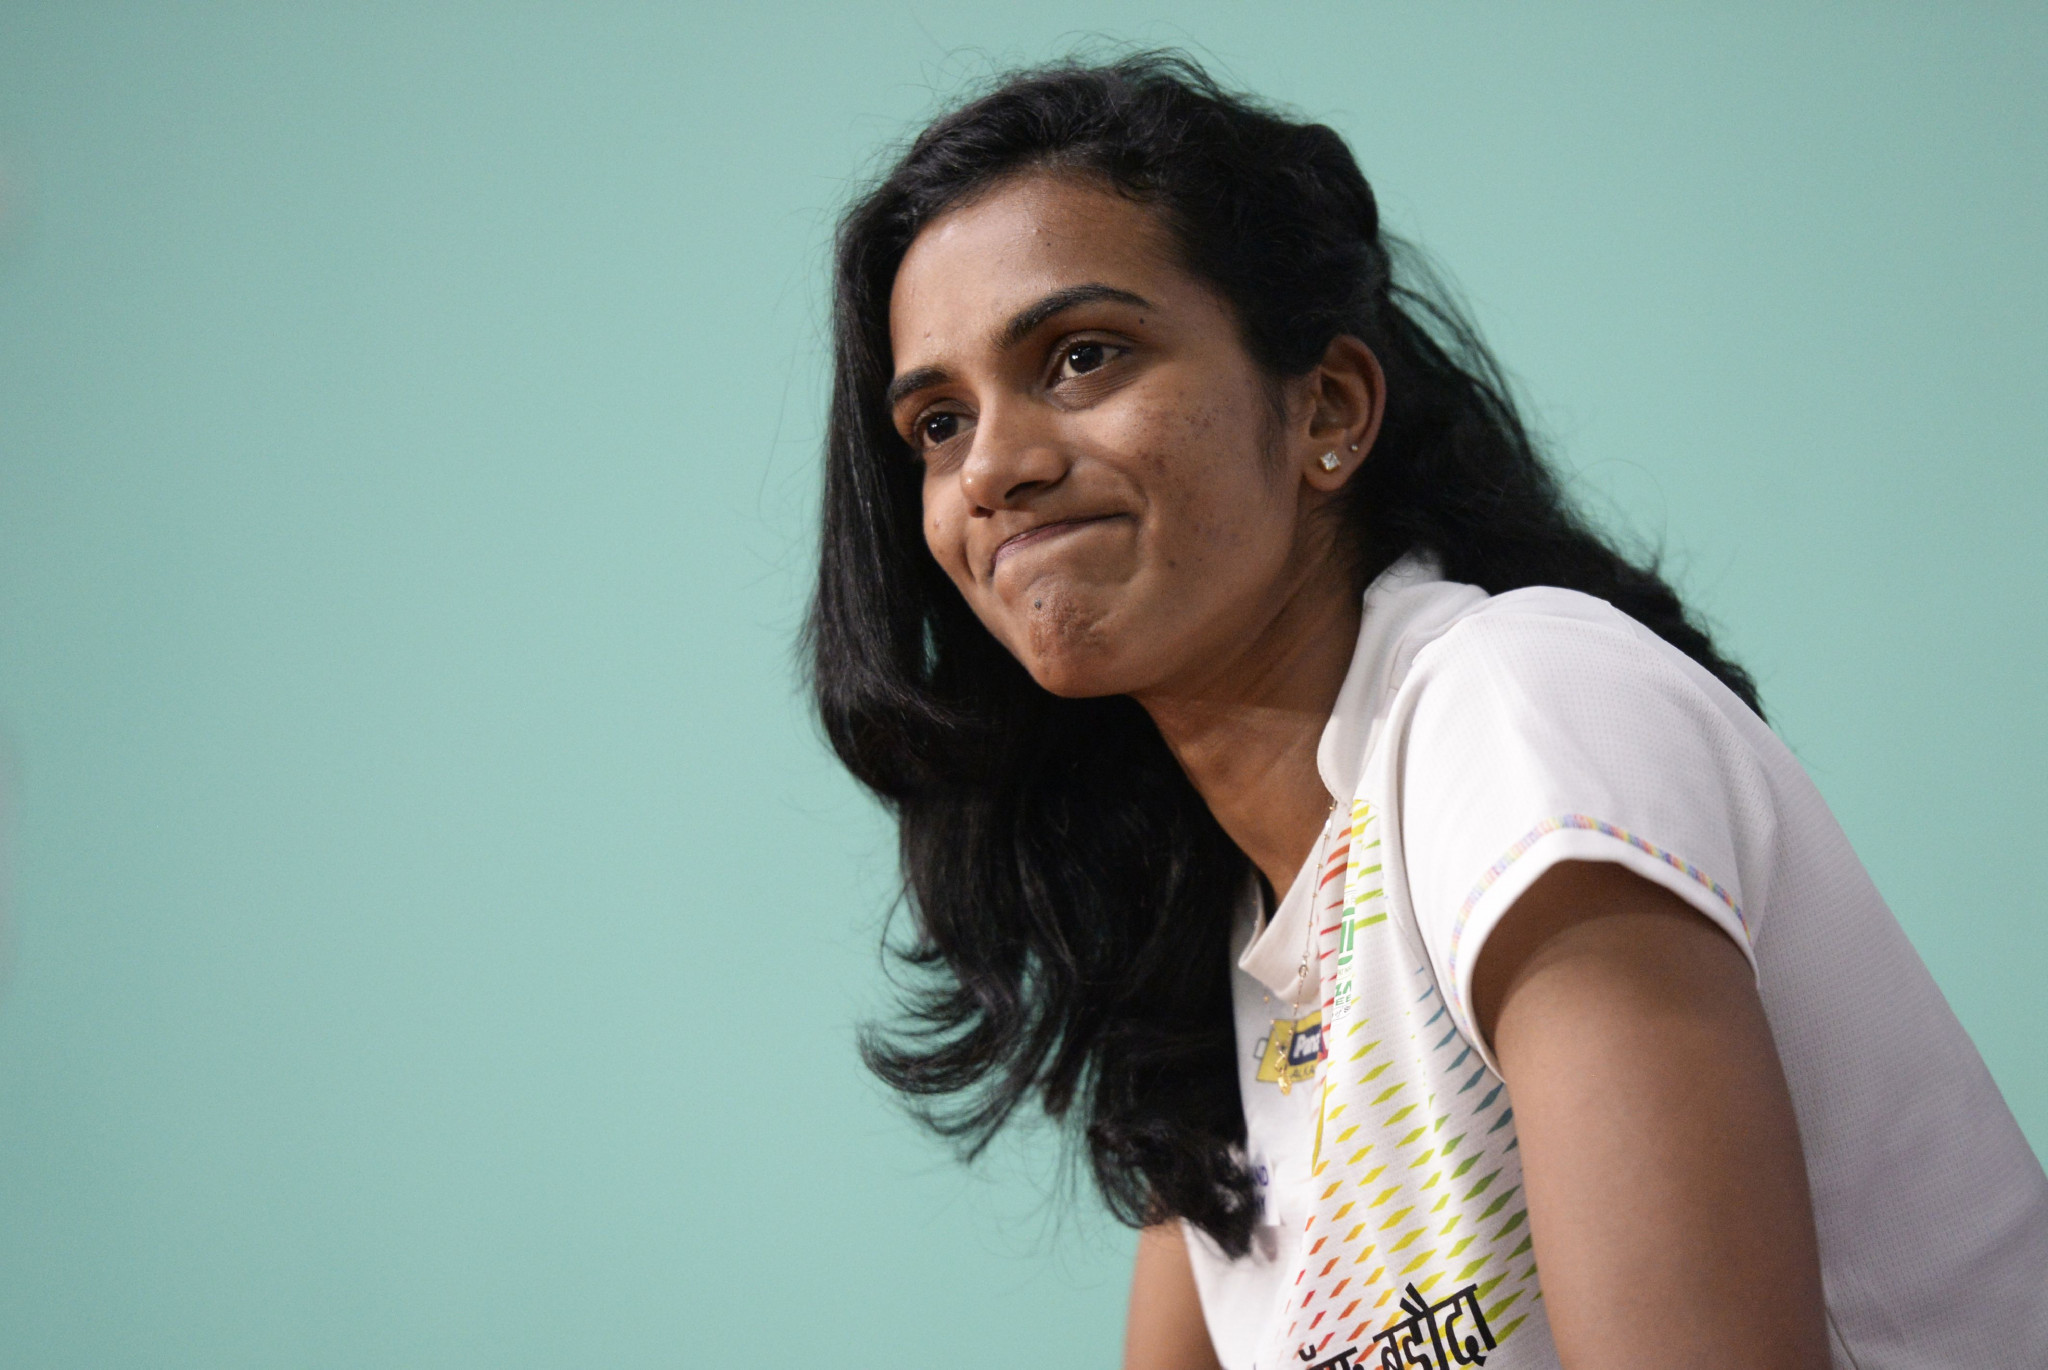 Badminton world champion Sindhu set for January return to competition